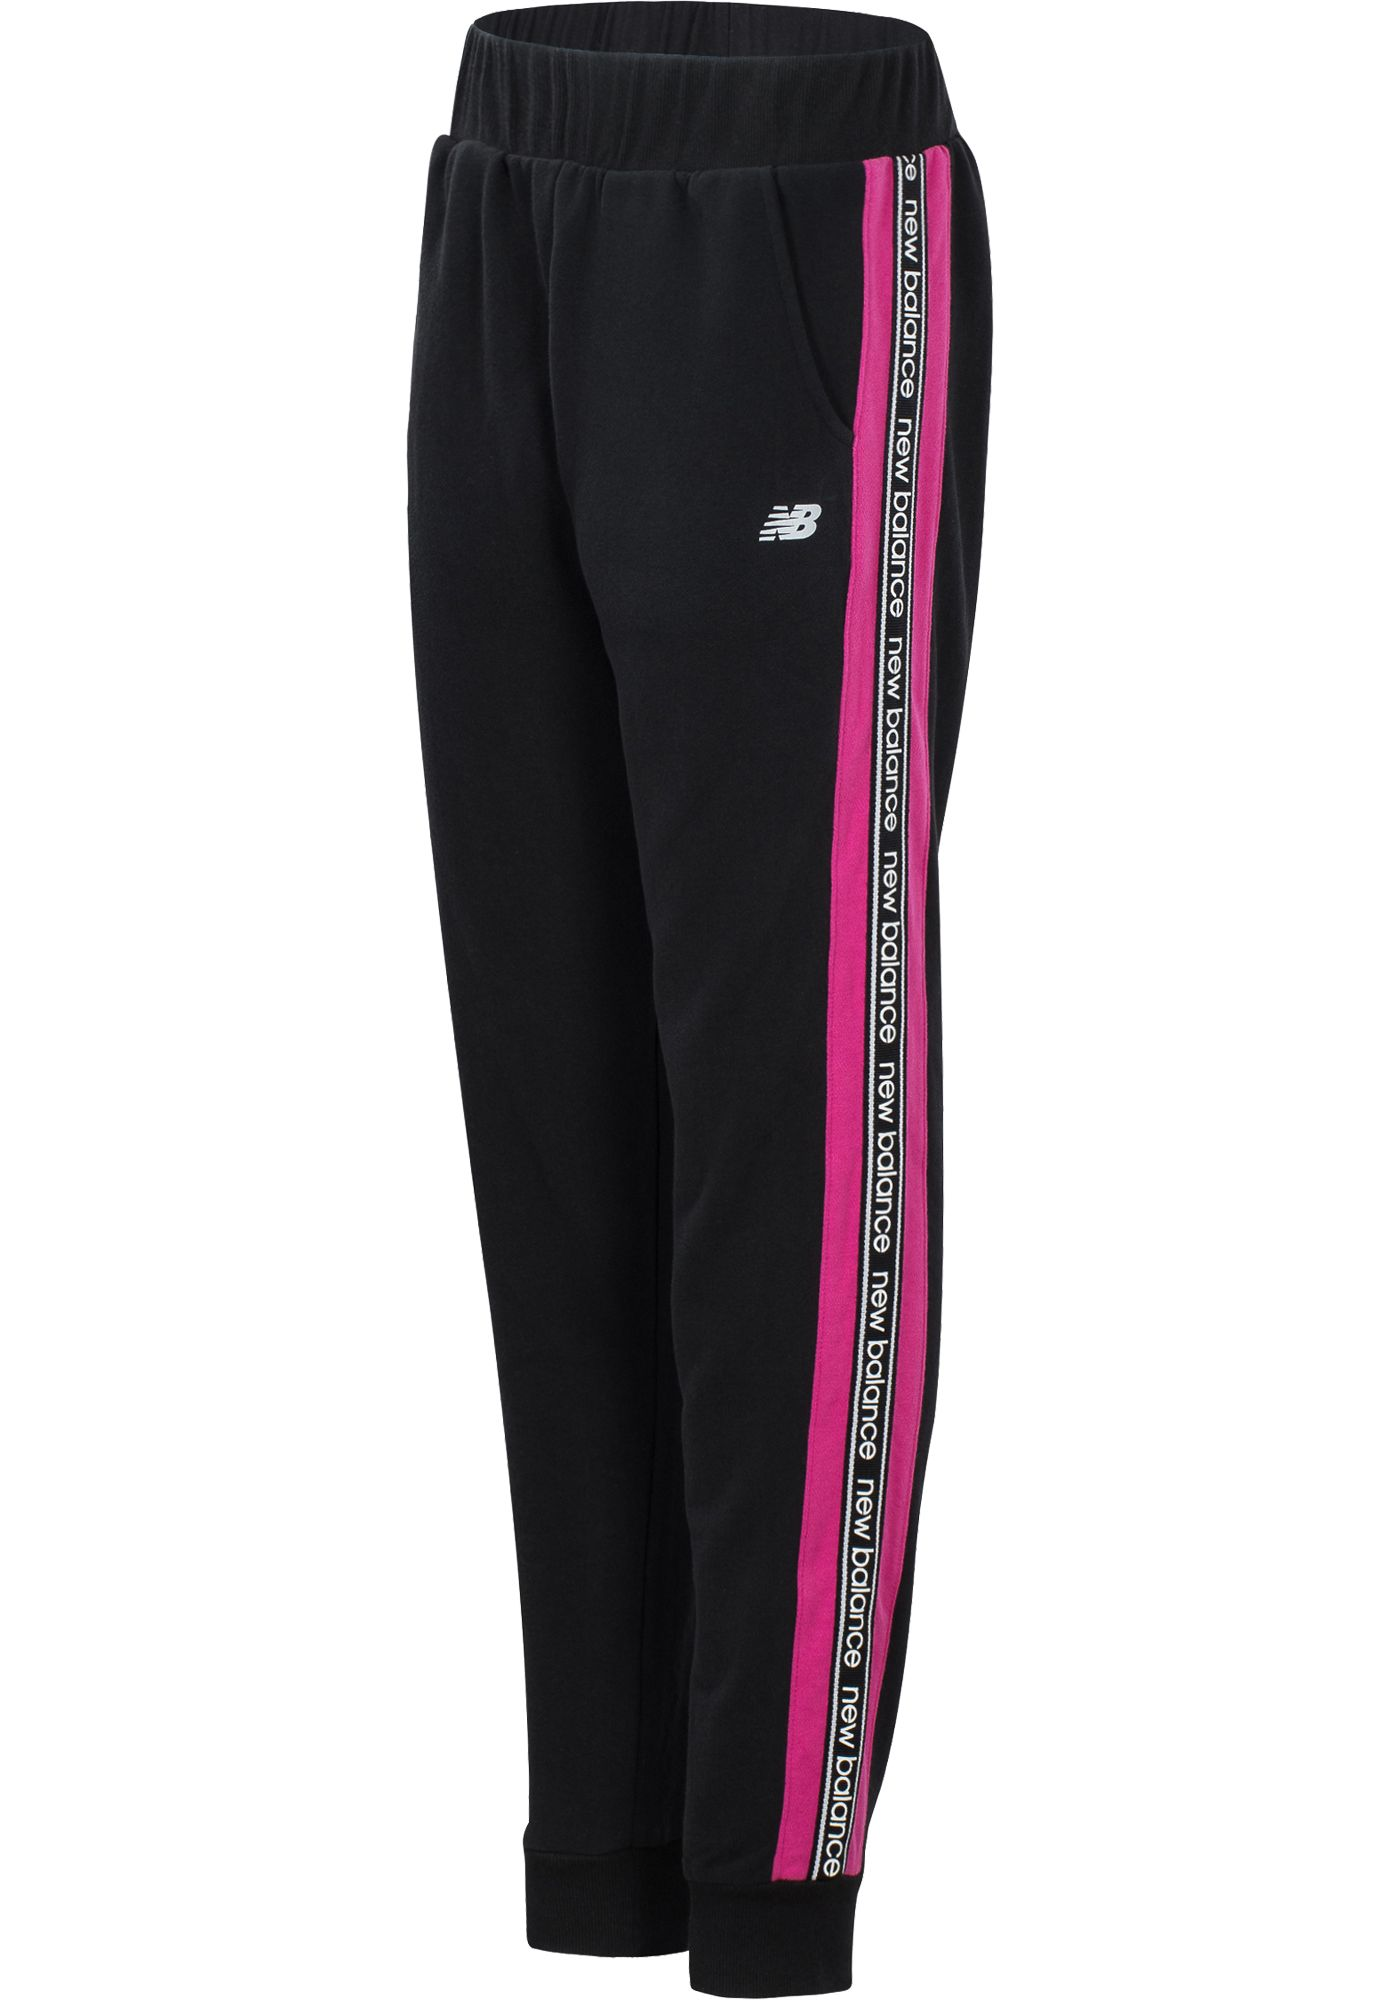 New Balance Girl's Side Tape Joggers